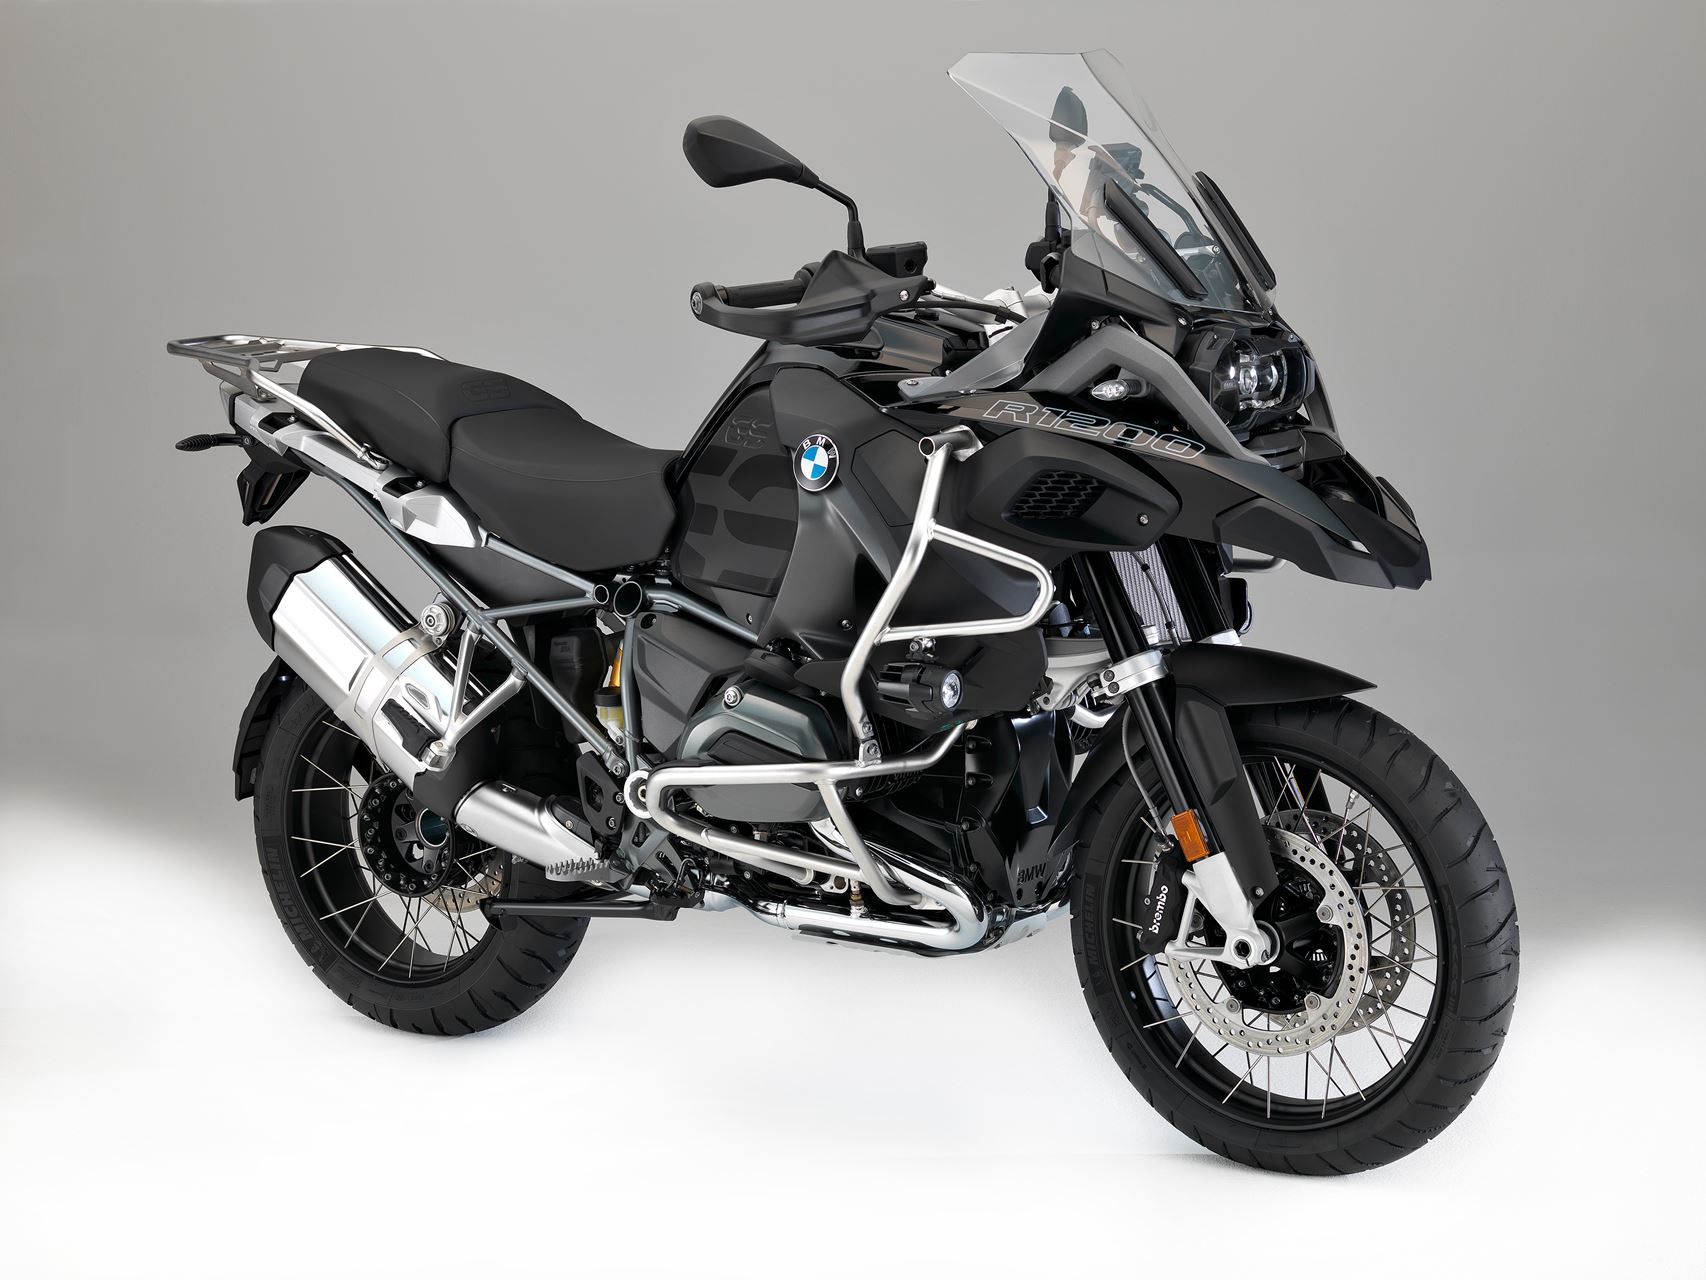 bmw r 1200 gs adventure moto adventure andar de moto. Black Bedroom Furniture Sets. Home Design Ideas